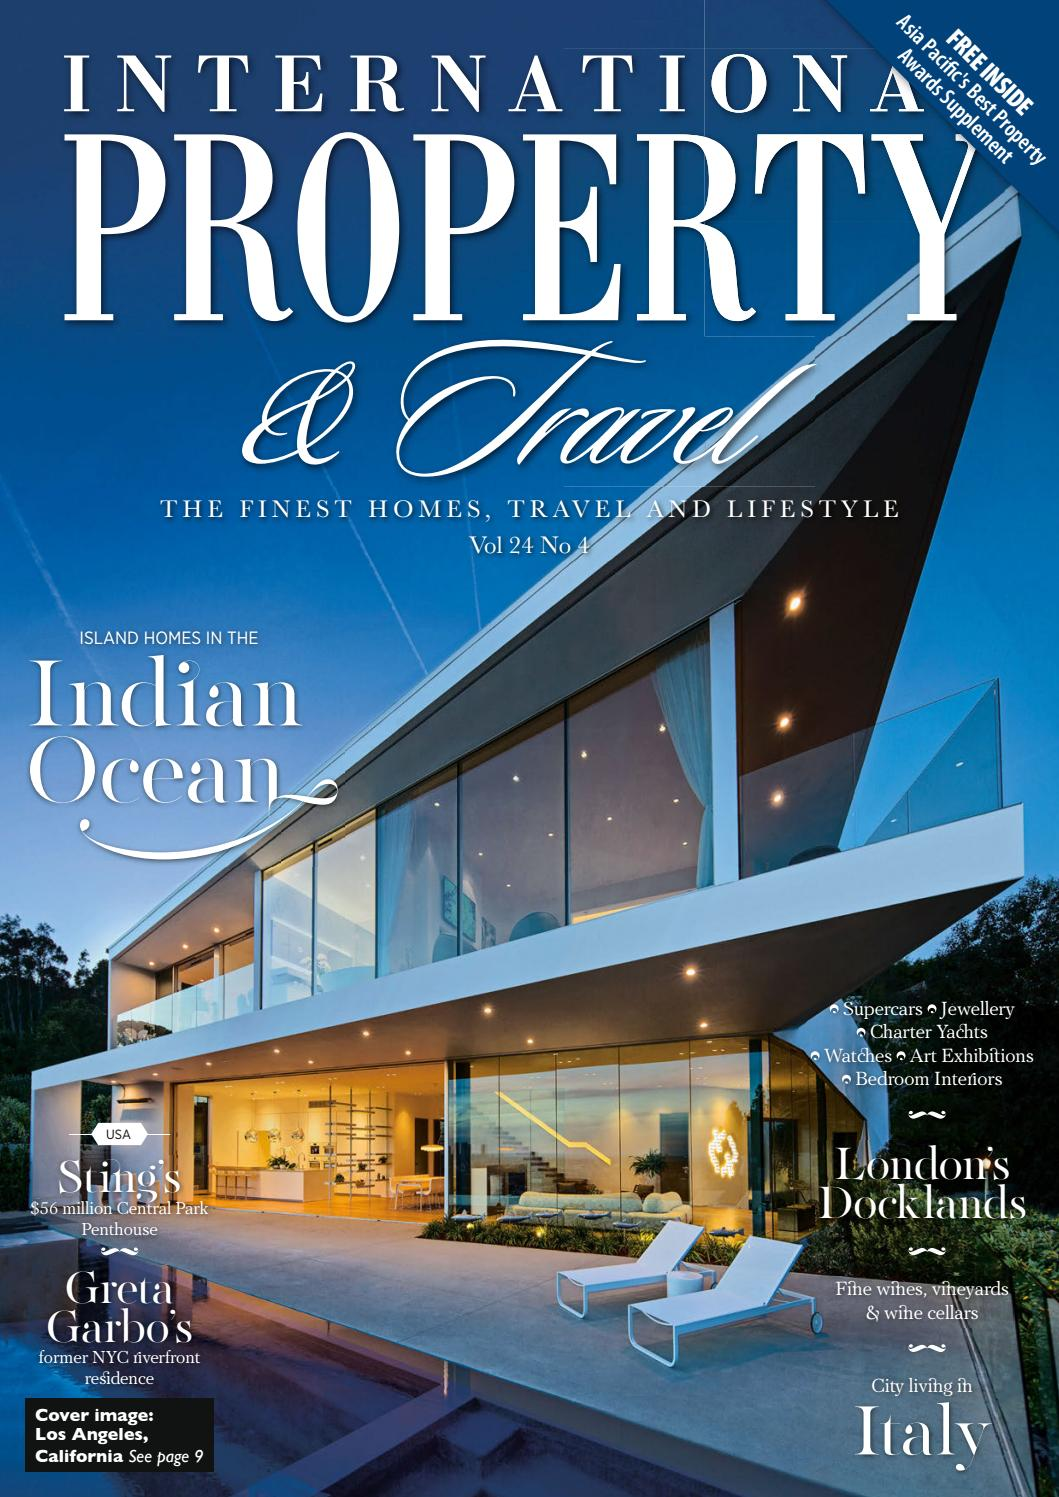 real estate vission house am intermediat cu 20 mai best new interior designers International Property u0026 Travel Volume 24 Number 4 by International Property  Media - issuu